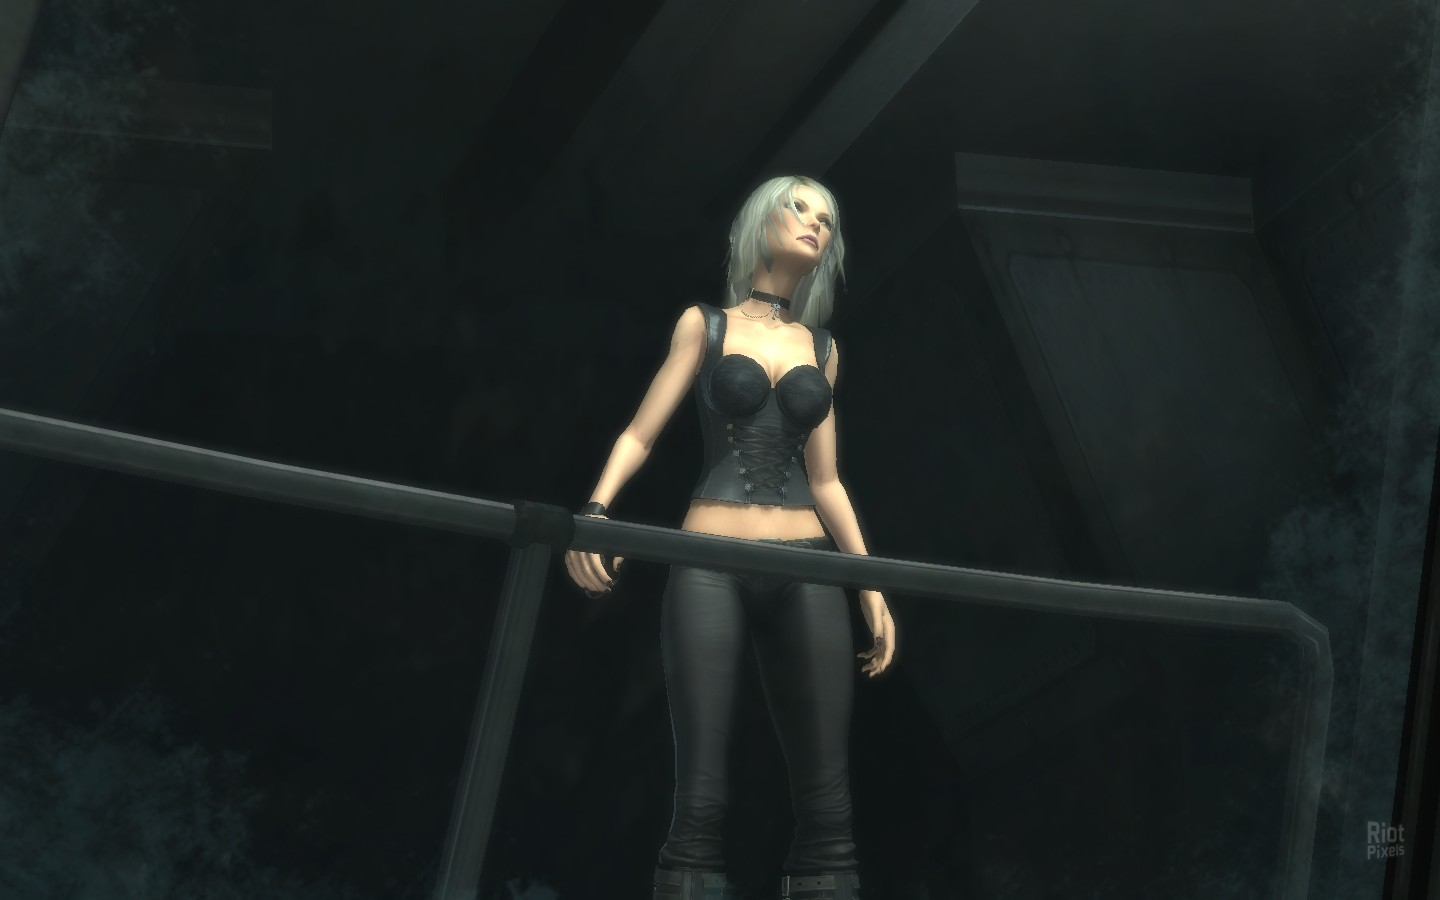 Tomb raider underworld boobs hardcore galleries